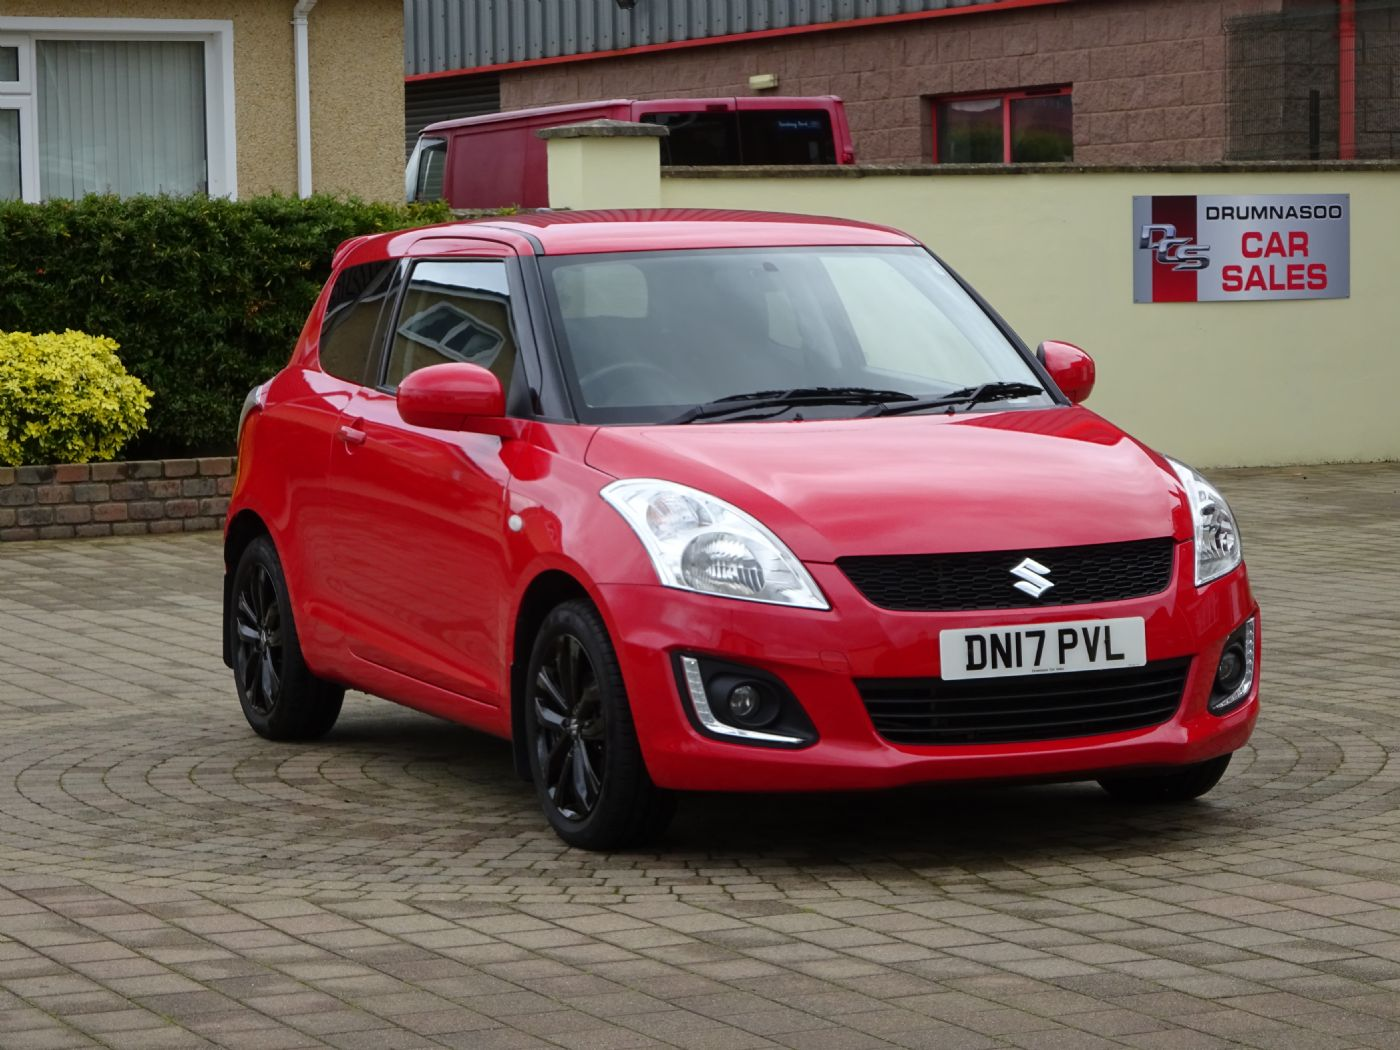 Suzuki Swift 1.2 SZ-L  [ Nav ] £30 Road Tax